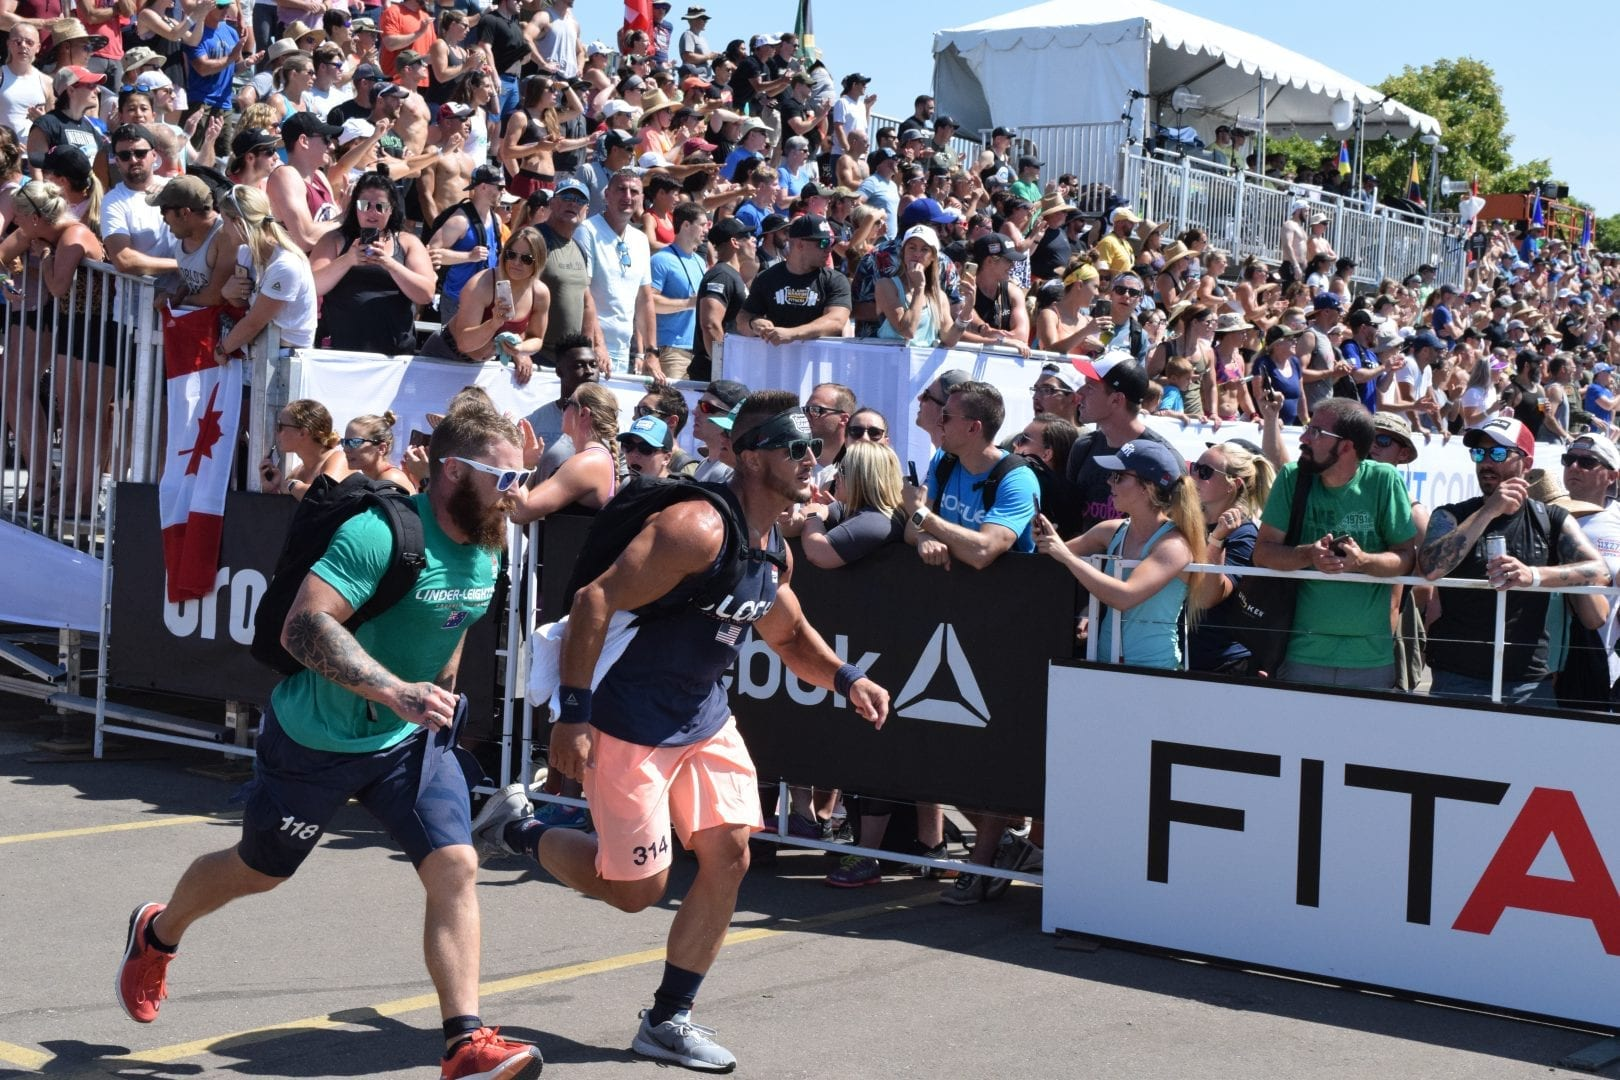 Dean Linder-Leighton completes the Ruck Run event at the 2019 CrossFit Games